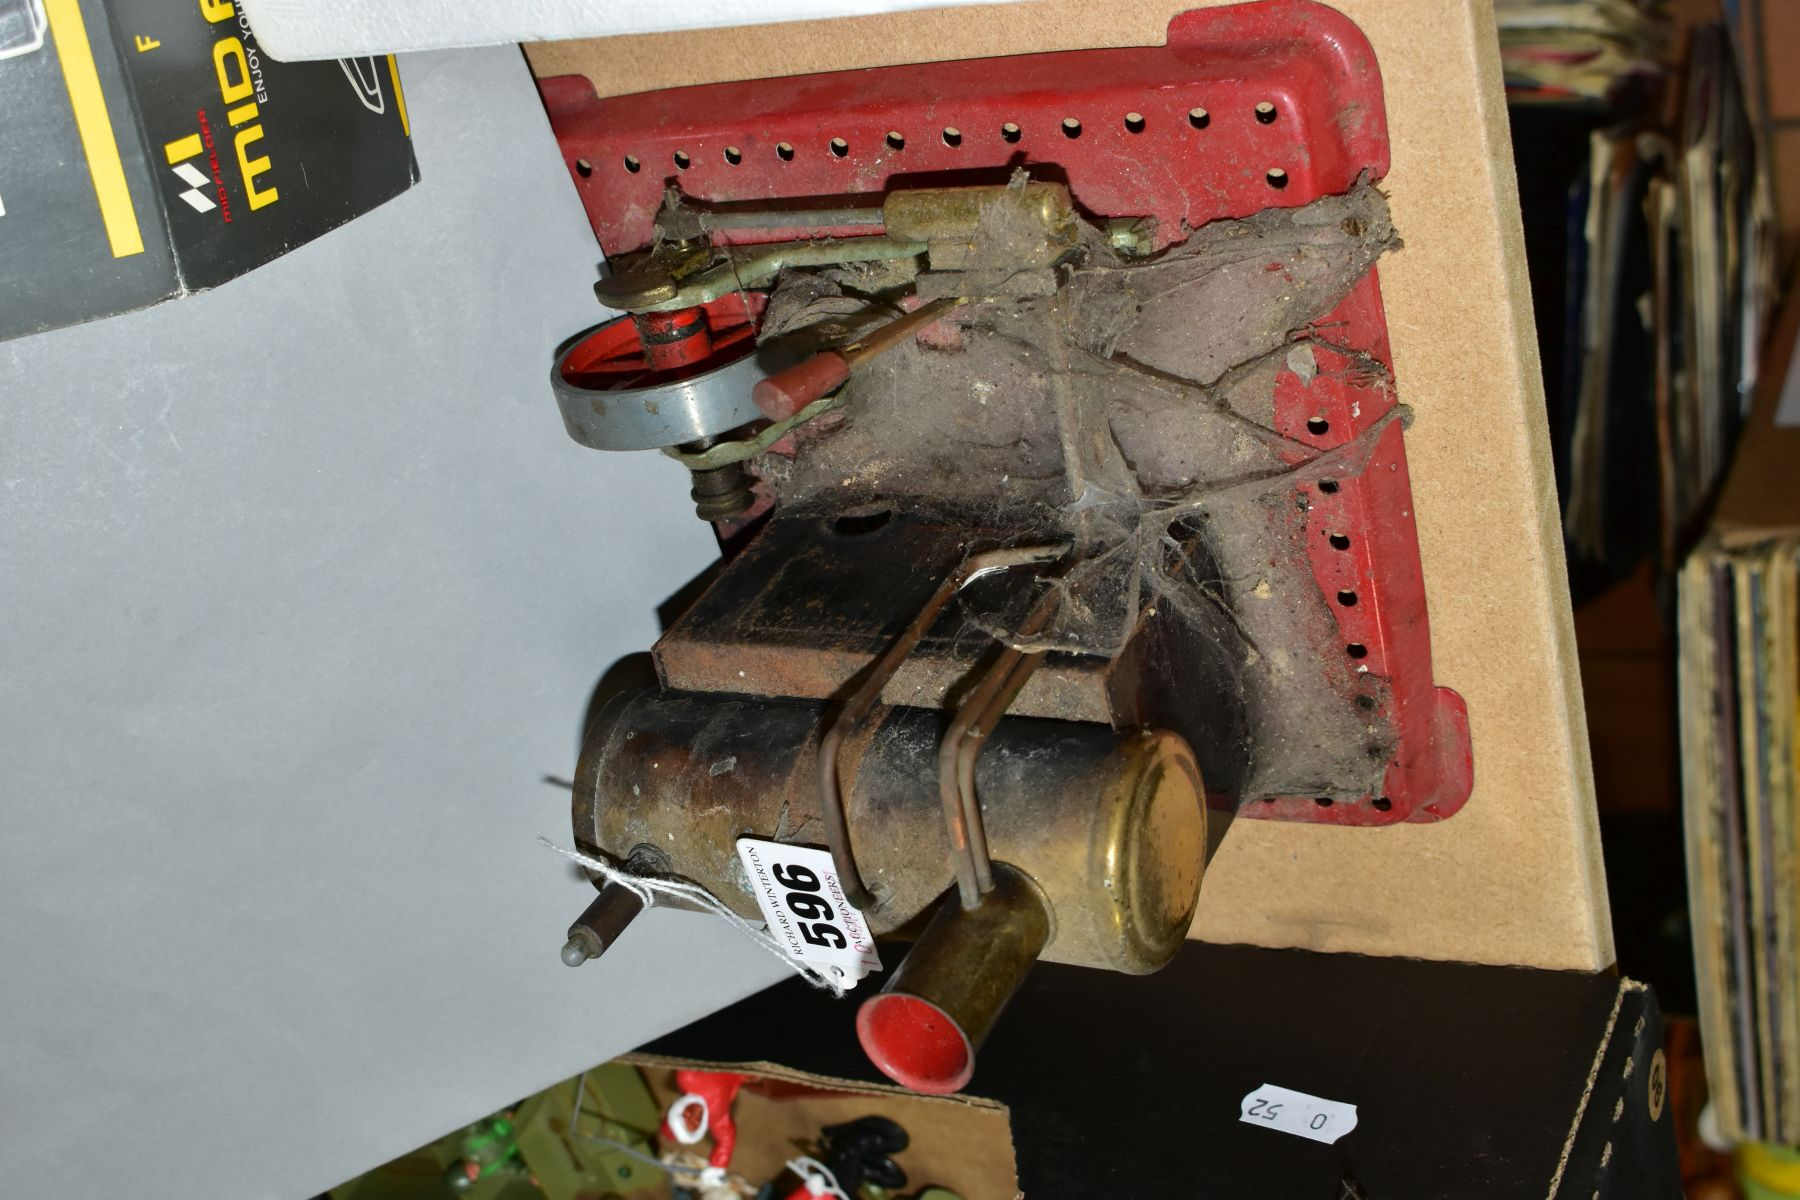 AN UNBOXED MAMOD LIVE STEAM ENGINE, No SE2, not tested, missing safety valve but has burner tray, - Image 5 of 6